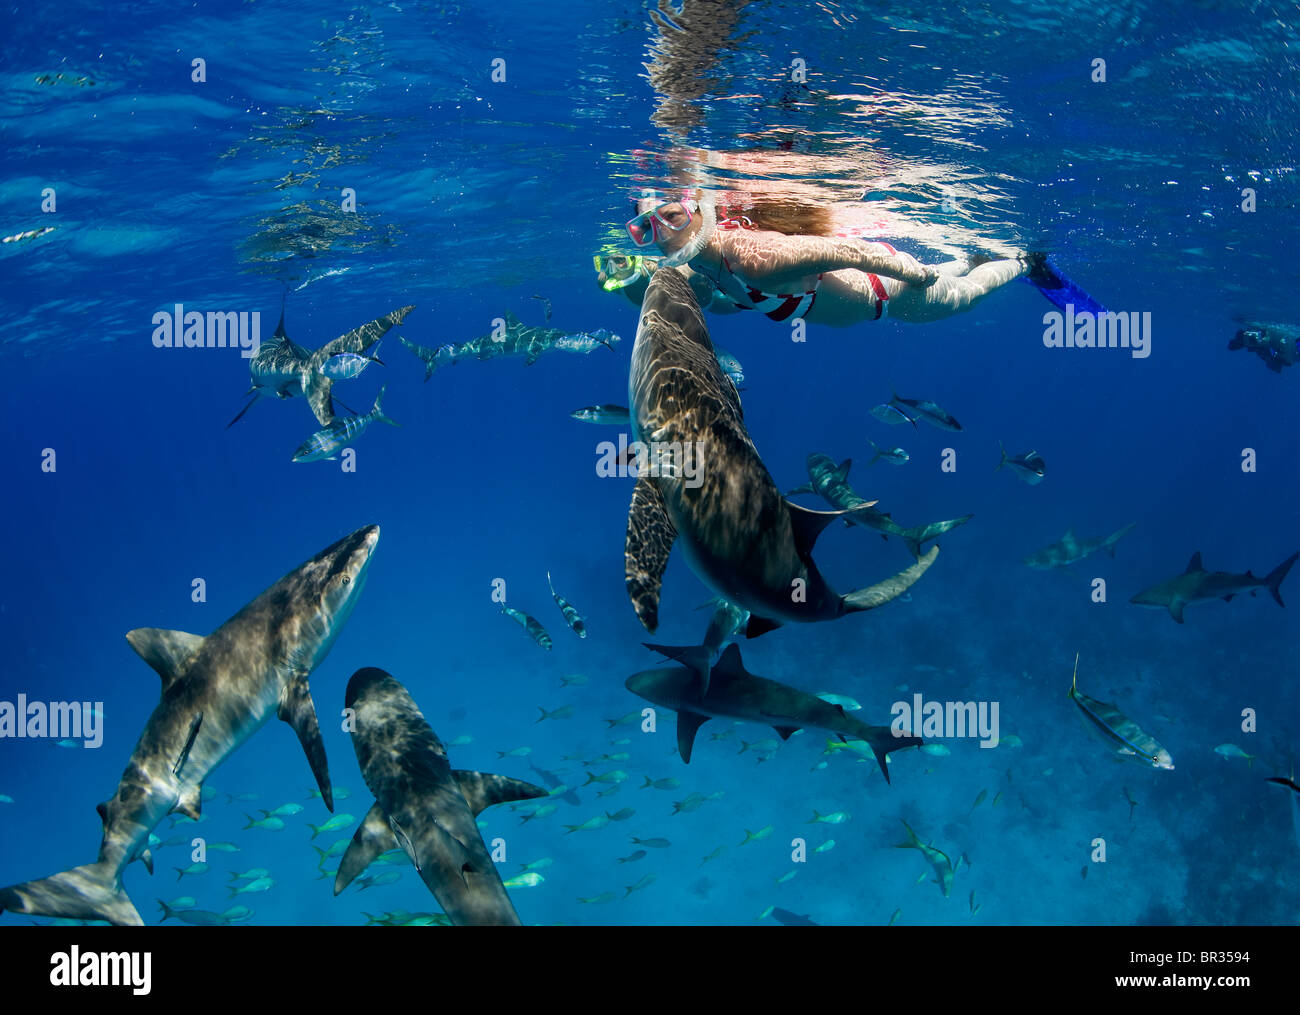 Caribbean reef shark (Carcharhinus perezi) bumps snorkeler, New Providence, Bahamas. Additional sharks circle snorkelers. - Stock Image